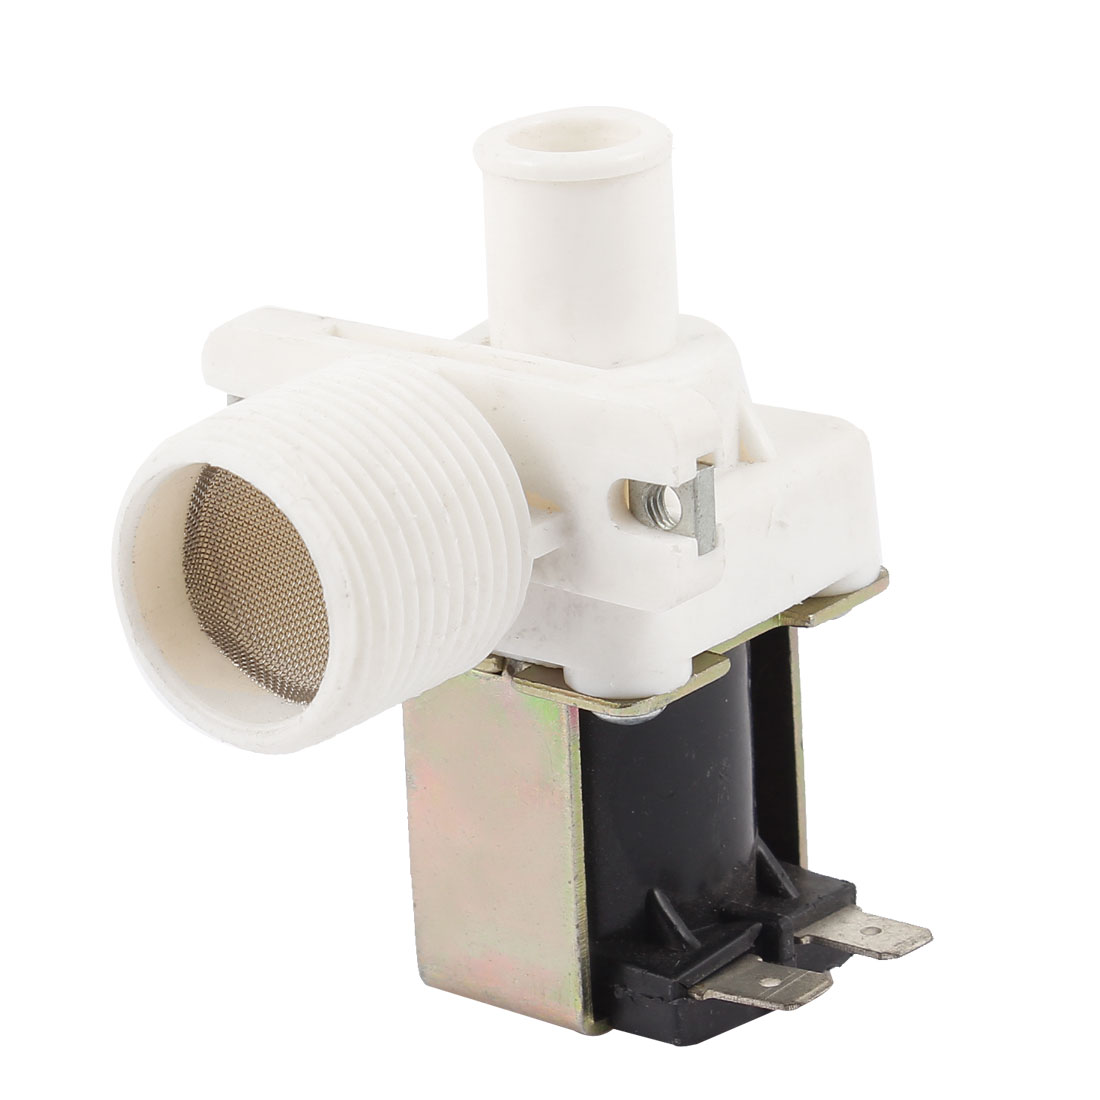 DC 12V 26mm Male Thread Water Inlet Solenoid Valve for Washing Machine